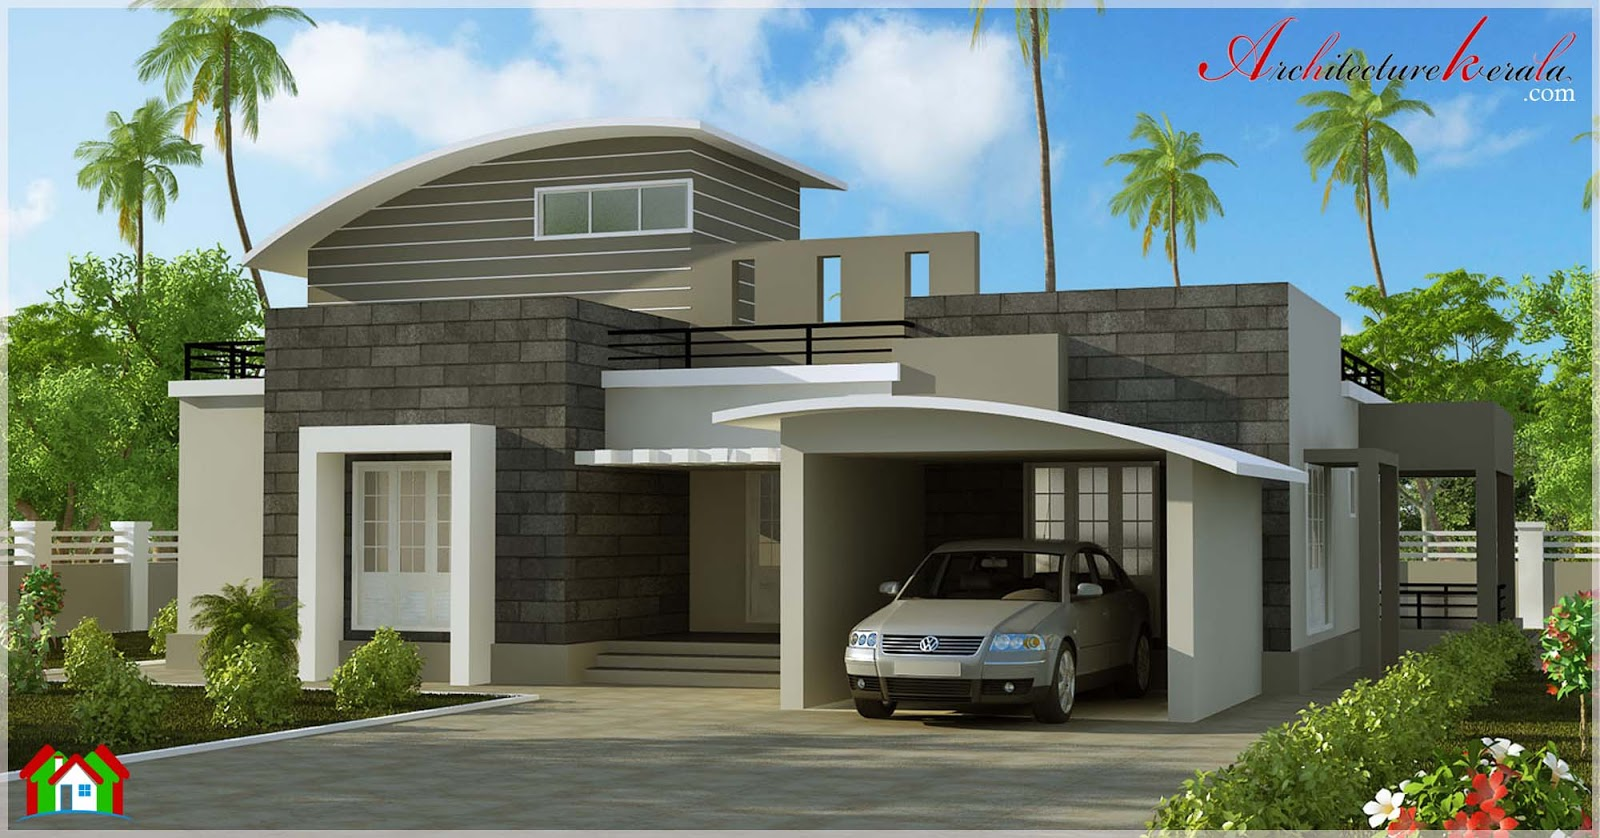 Small House Elevation Kerala Style : Contemporary style villa elevation architecture kerala